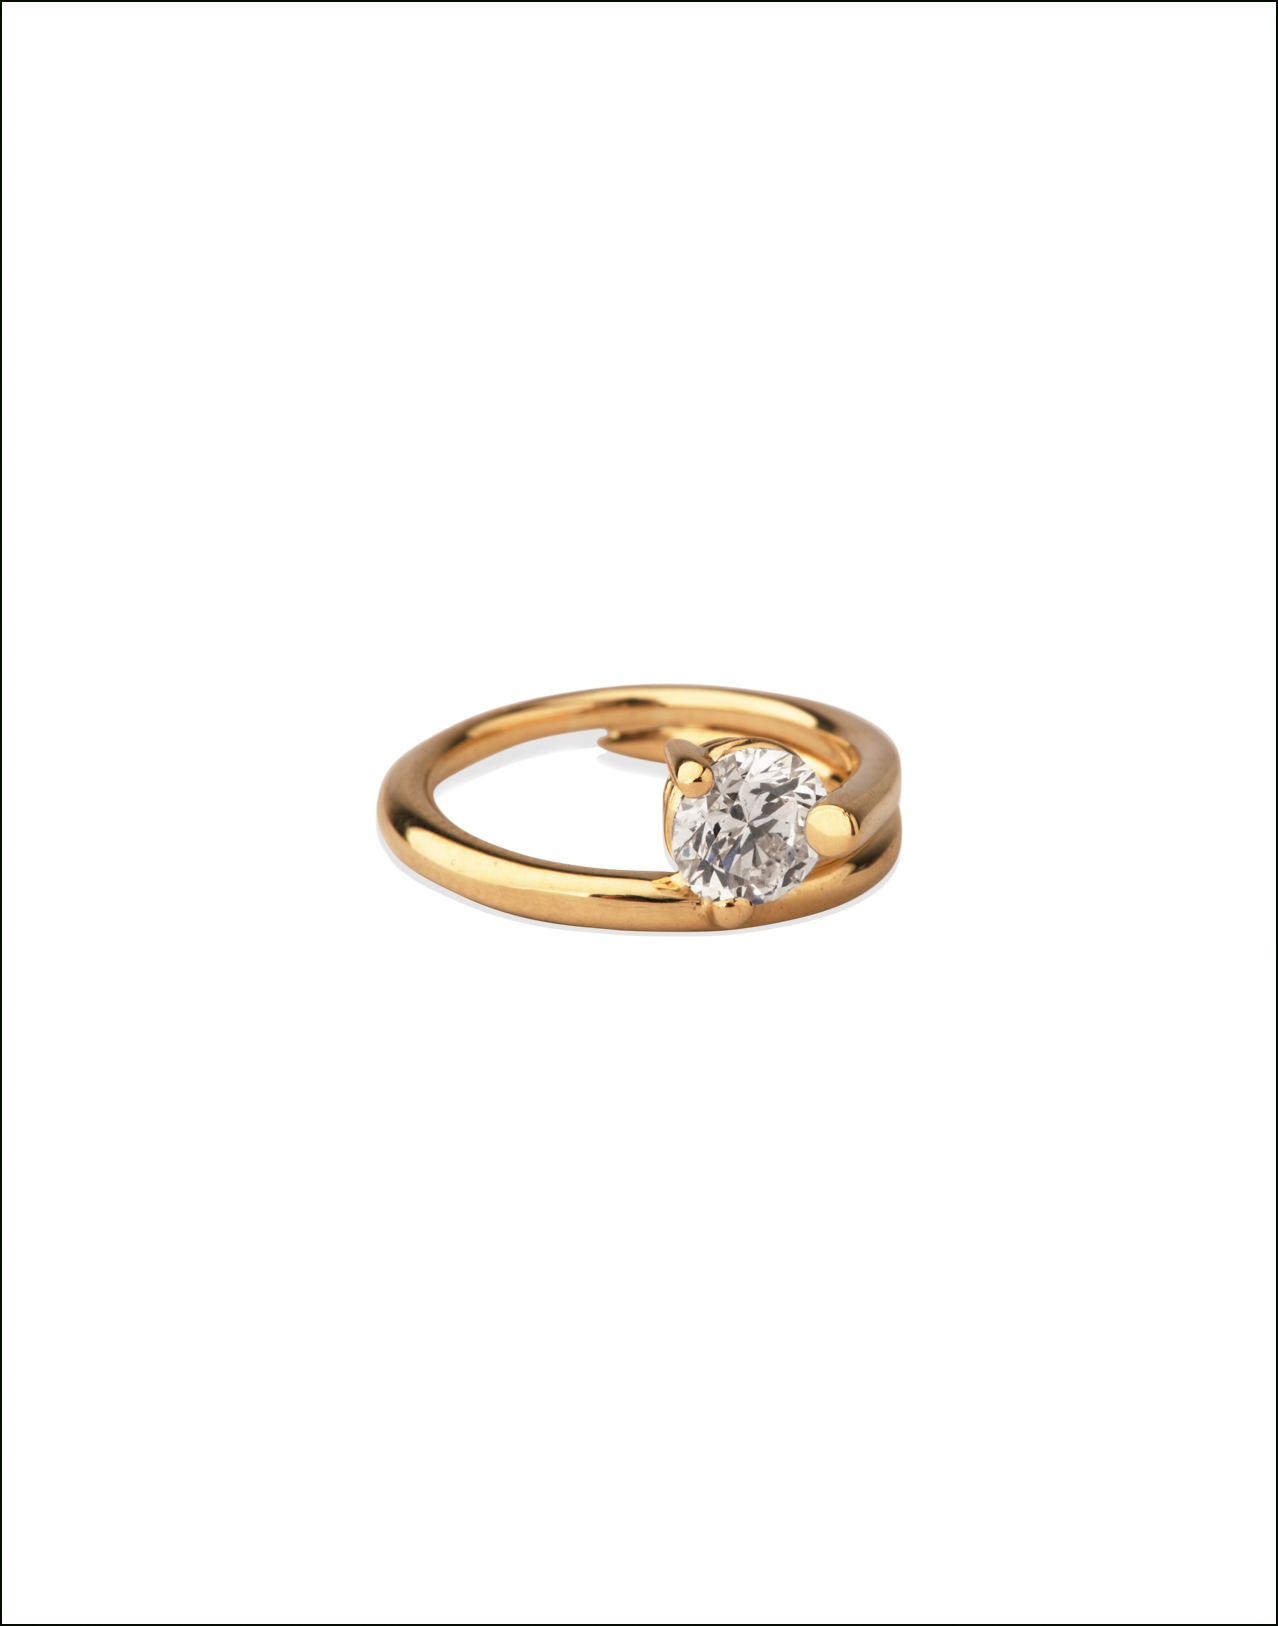 Completedworks-Subverted-Flower-Bridal-Ring-4-1.png